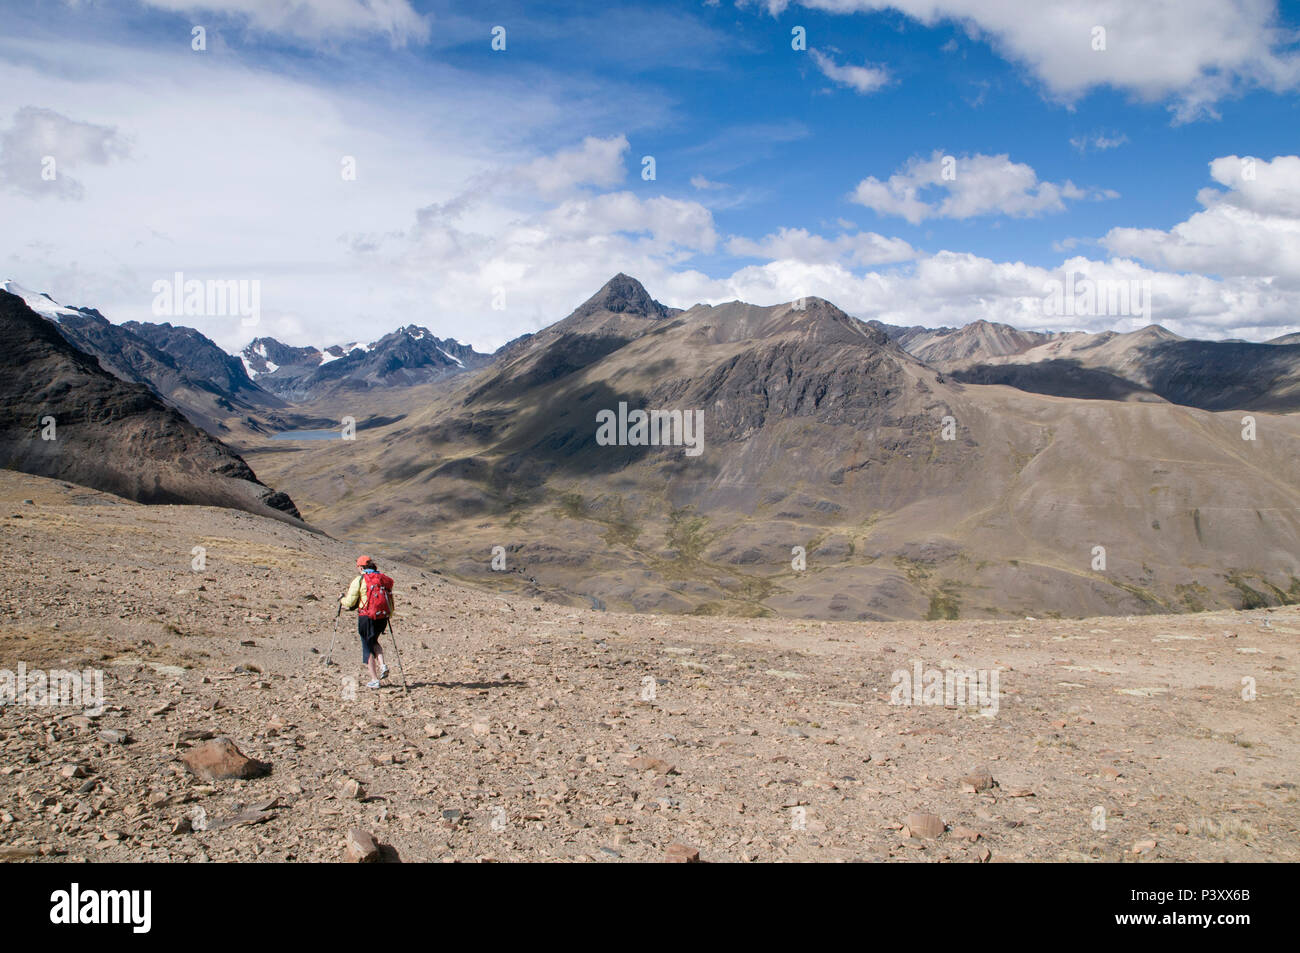 Trekking in the Cordillera Real region of the Bolivian Andes. - Stock Image